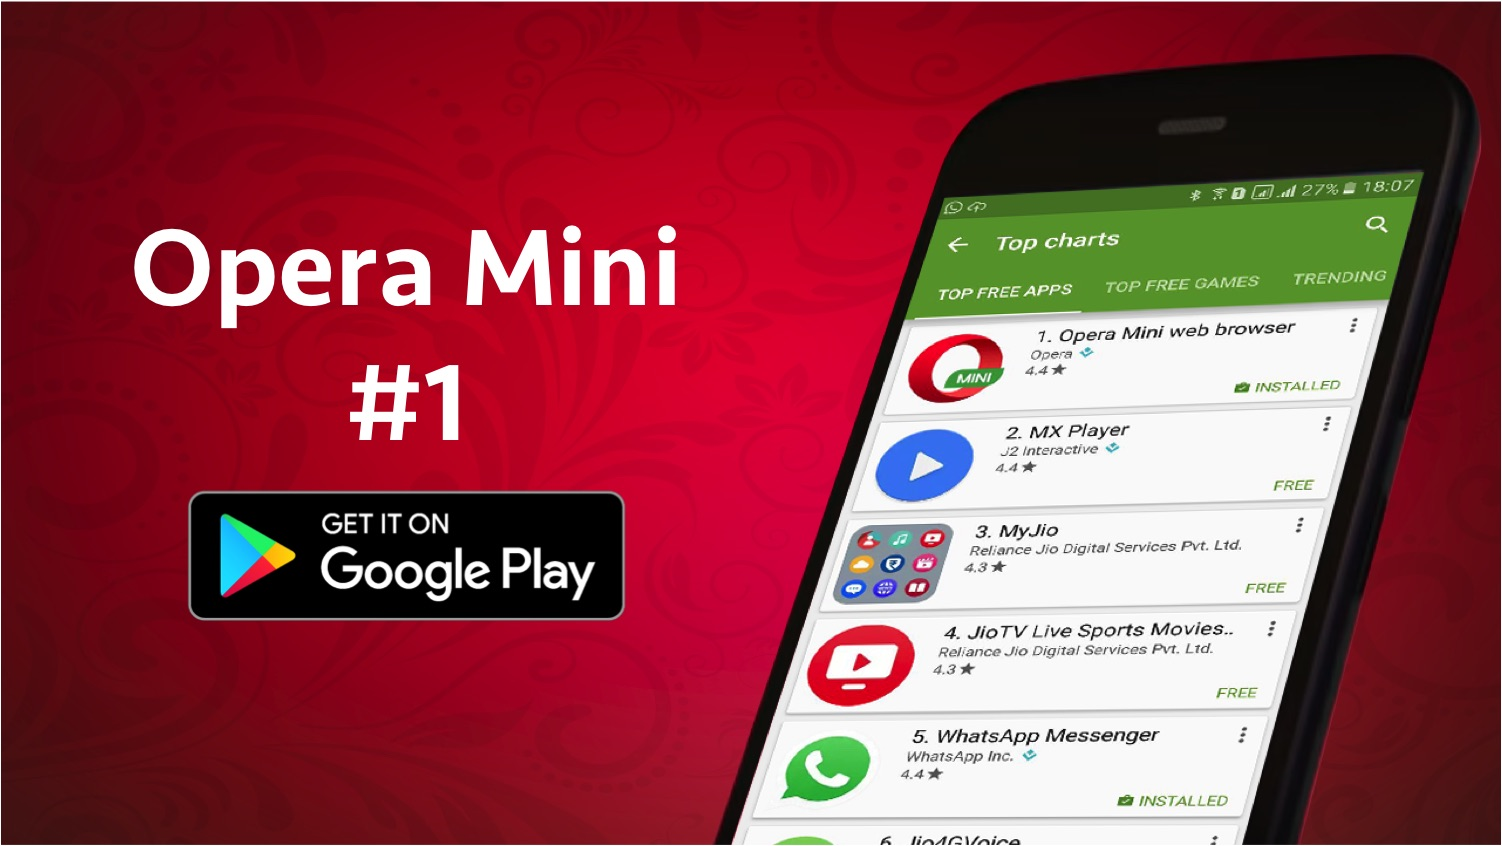 Opera mini is the most downloaded app in india ccuart Choice Image